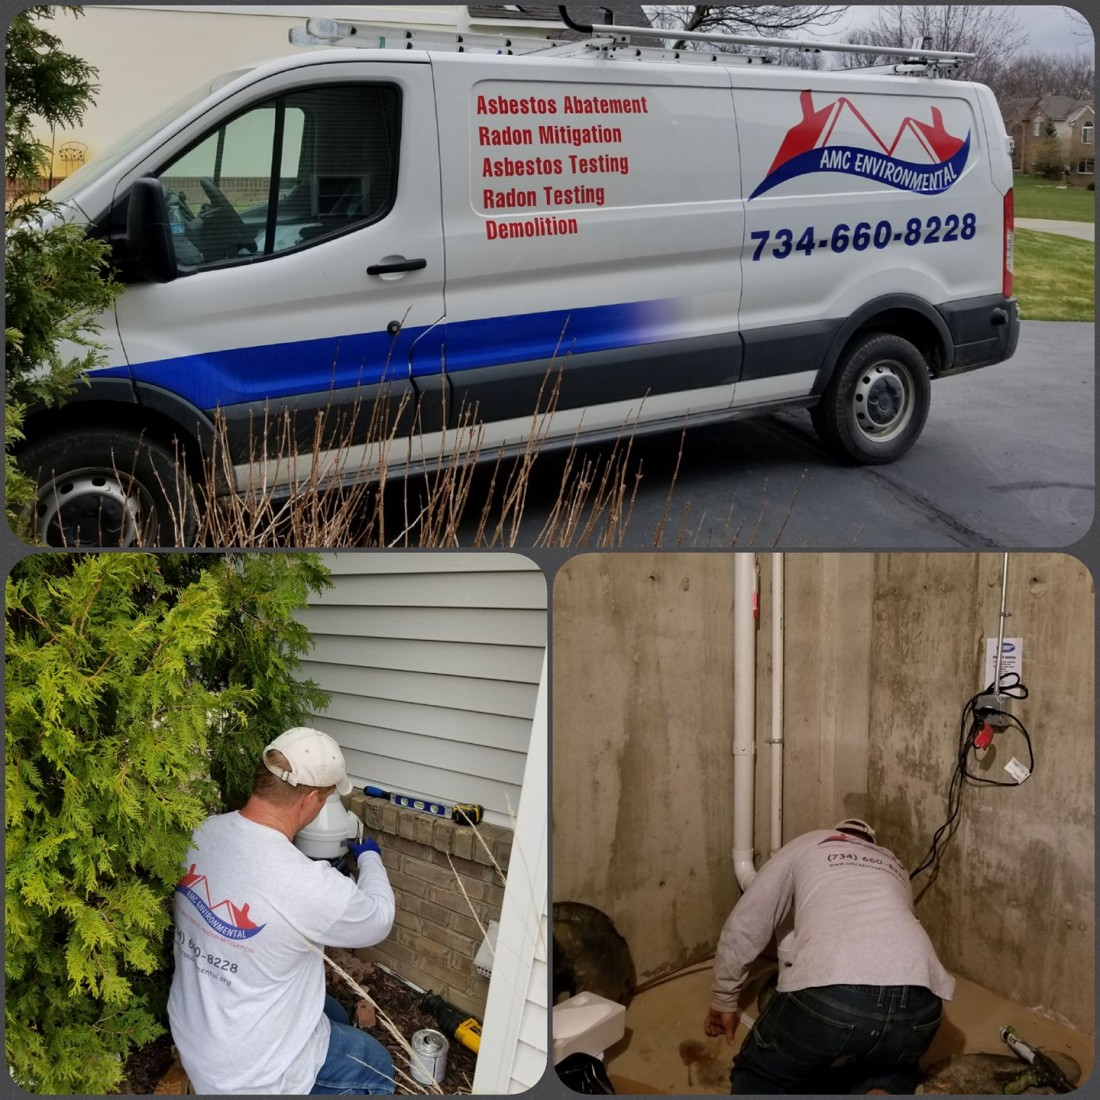 AMC Environmental: Residential & Commercial Asbestos, Mold, Radon & Lead Specialist - Radon_Howell